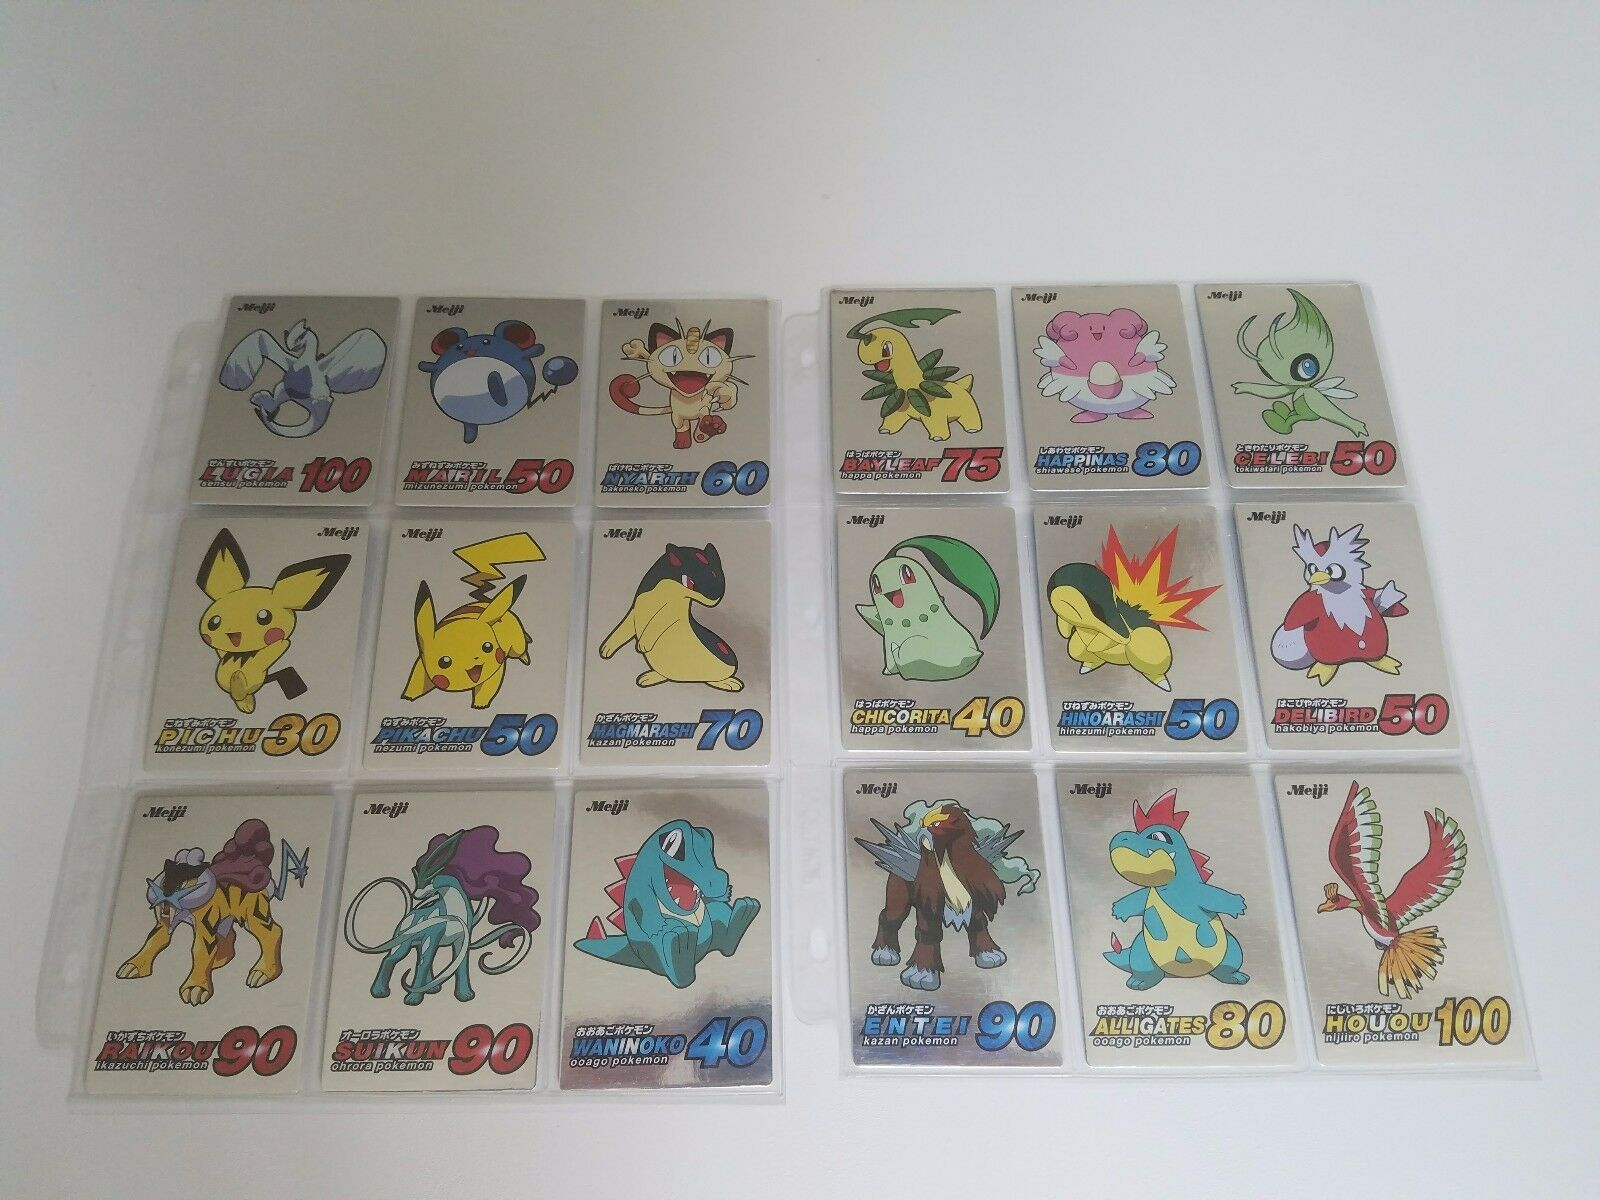 Pokemon Meiji Promo Cards 5 5 5 Complete Sets in Near Mint Mint Condition 90 Cards e95f1e